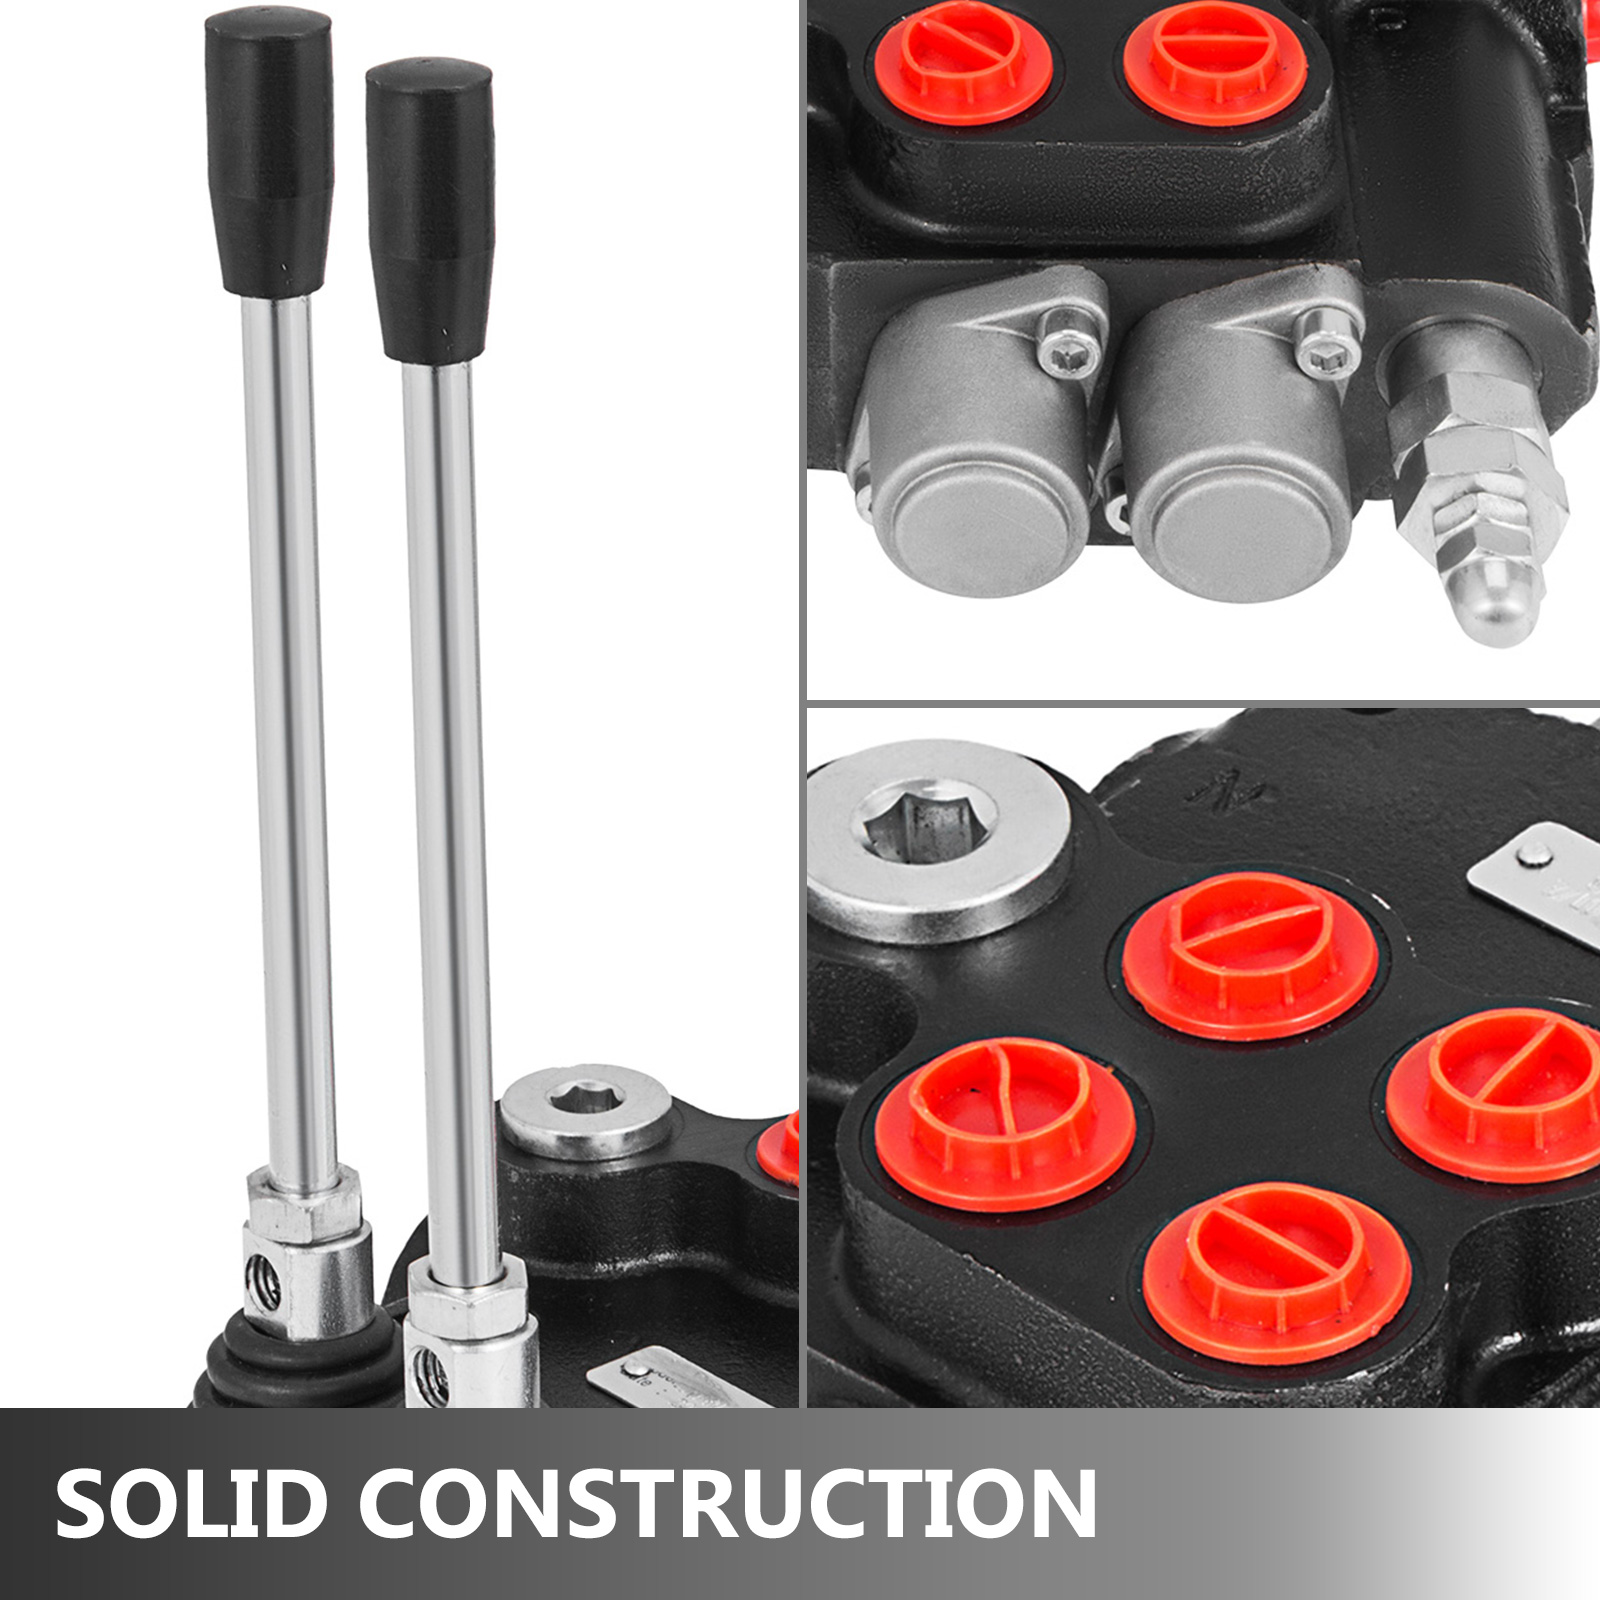 2-Spool-Hydraulic-Control-Valve-21GPM-Double-Acting-Monoblock-Log-Small-Tractors thumbnail 2